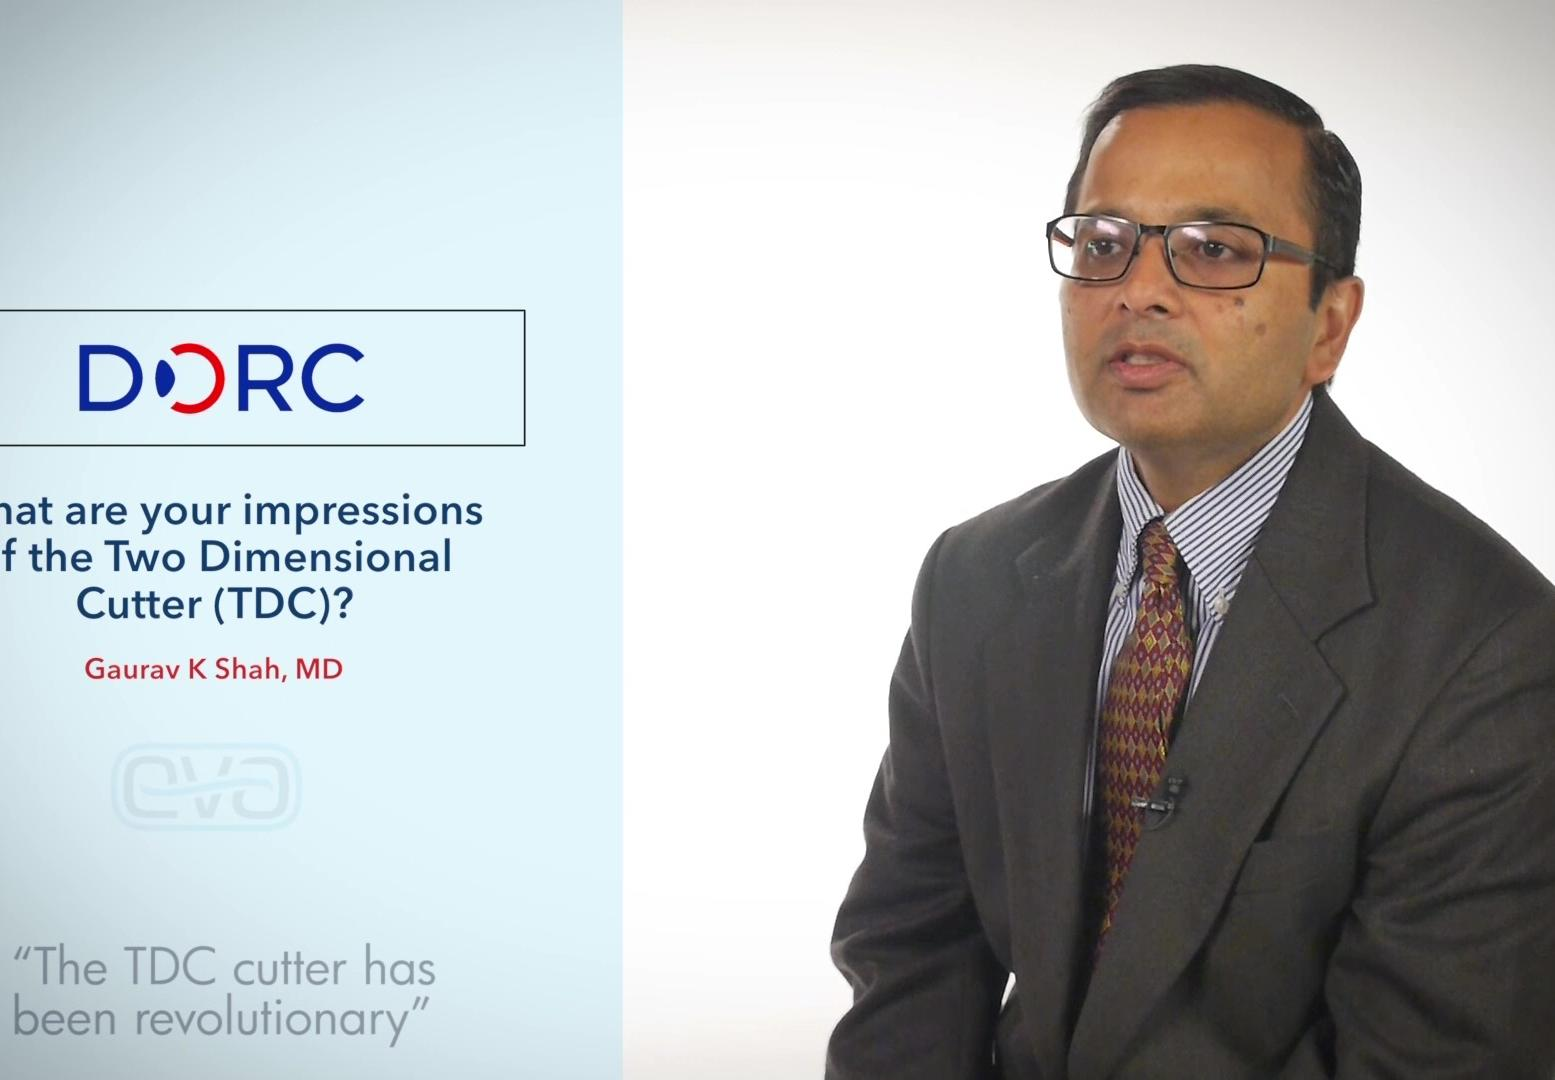 Gaurav K Shah, MD, USA, describes his experience and impression of EVA